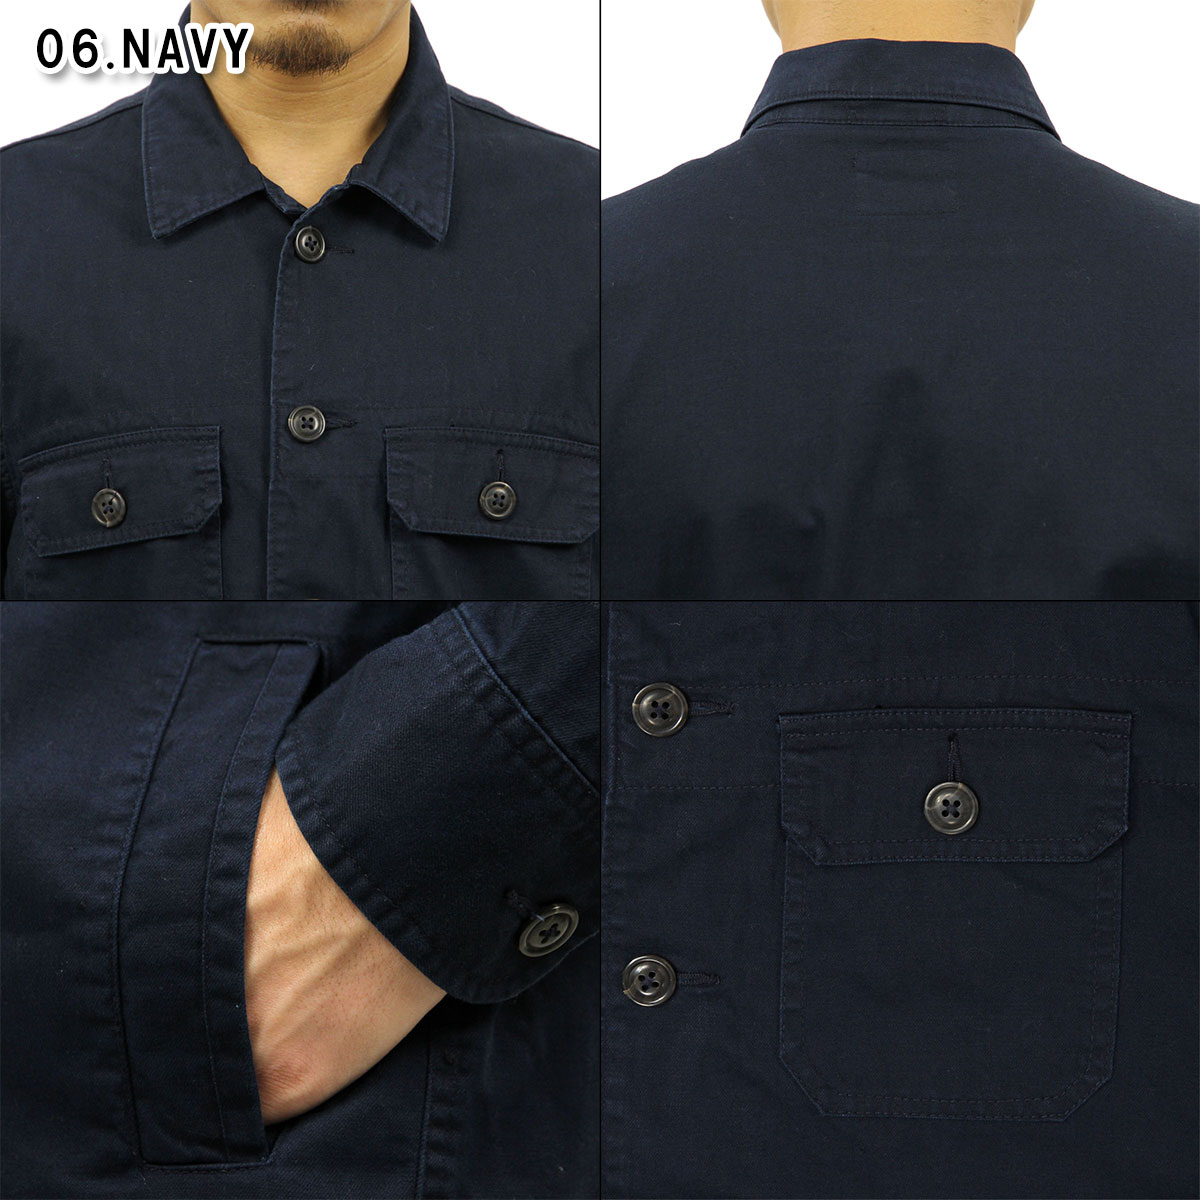 95a07979392cc ABBA black Abercrombie & Fitch regular article men outer military shirt  jacket MILITARY SHIRT JACKET